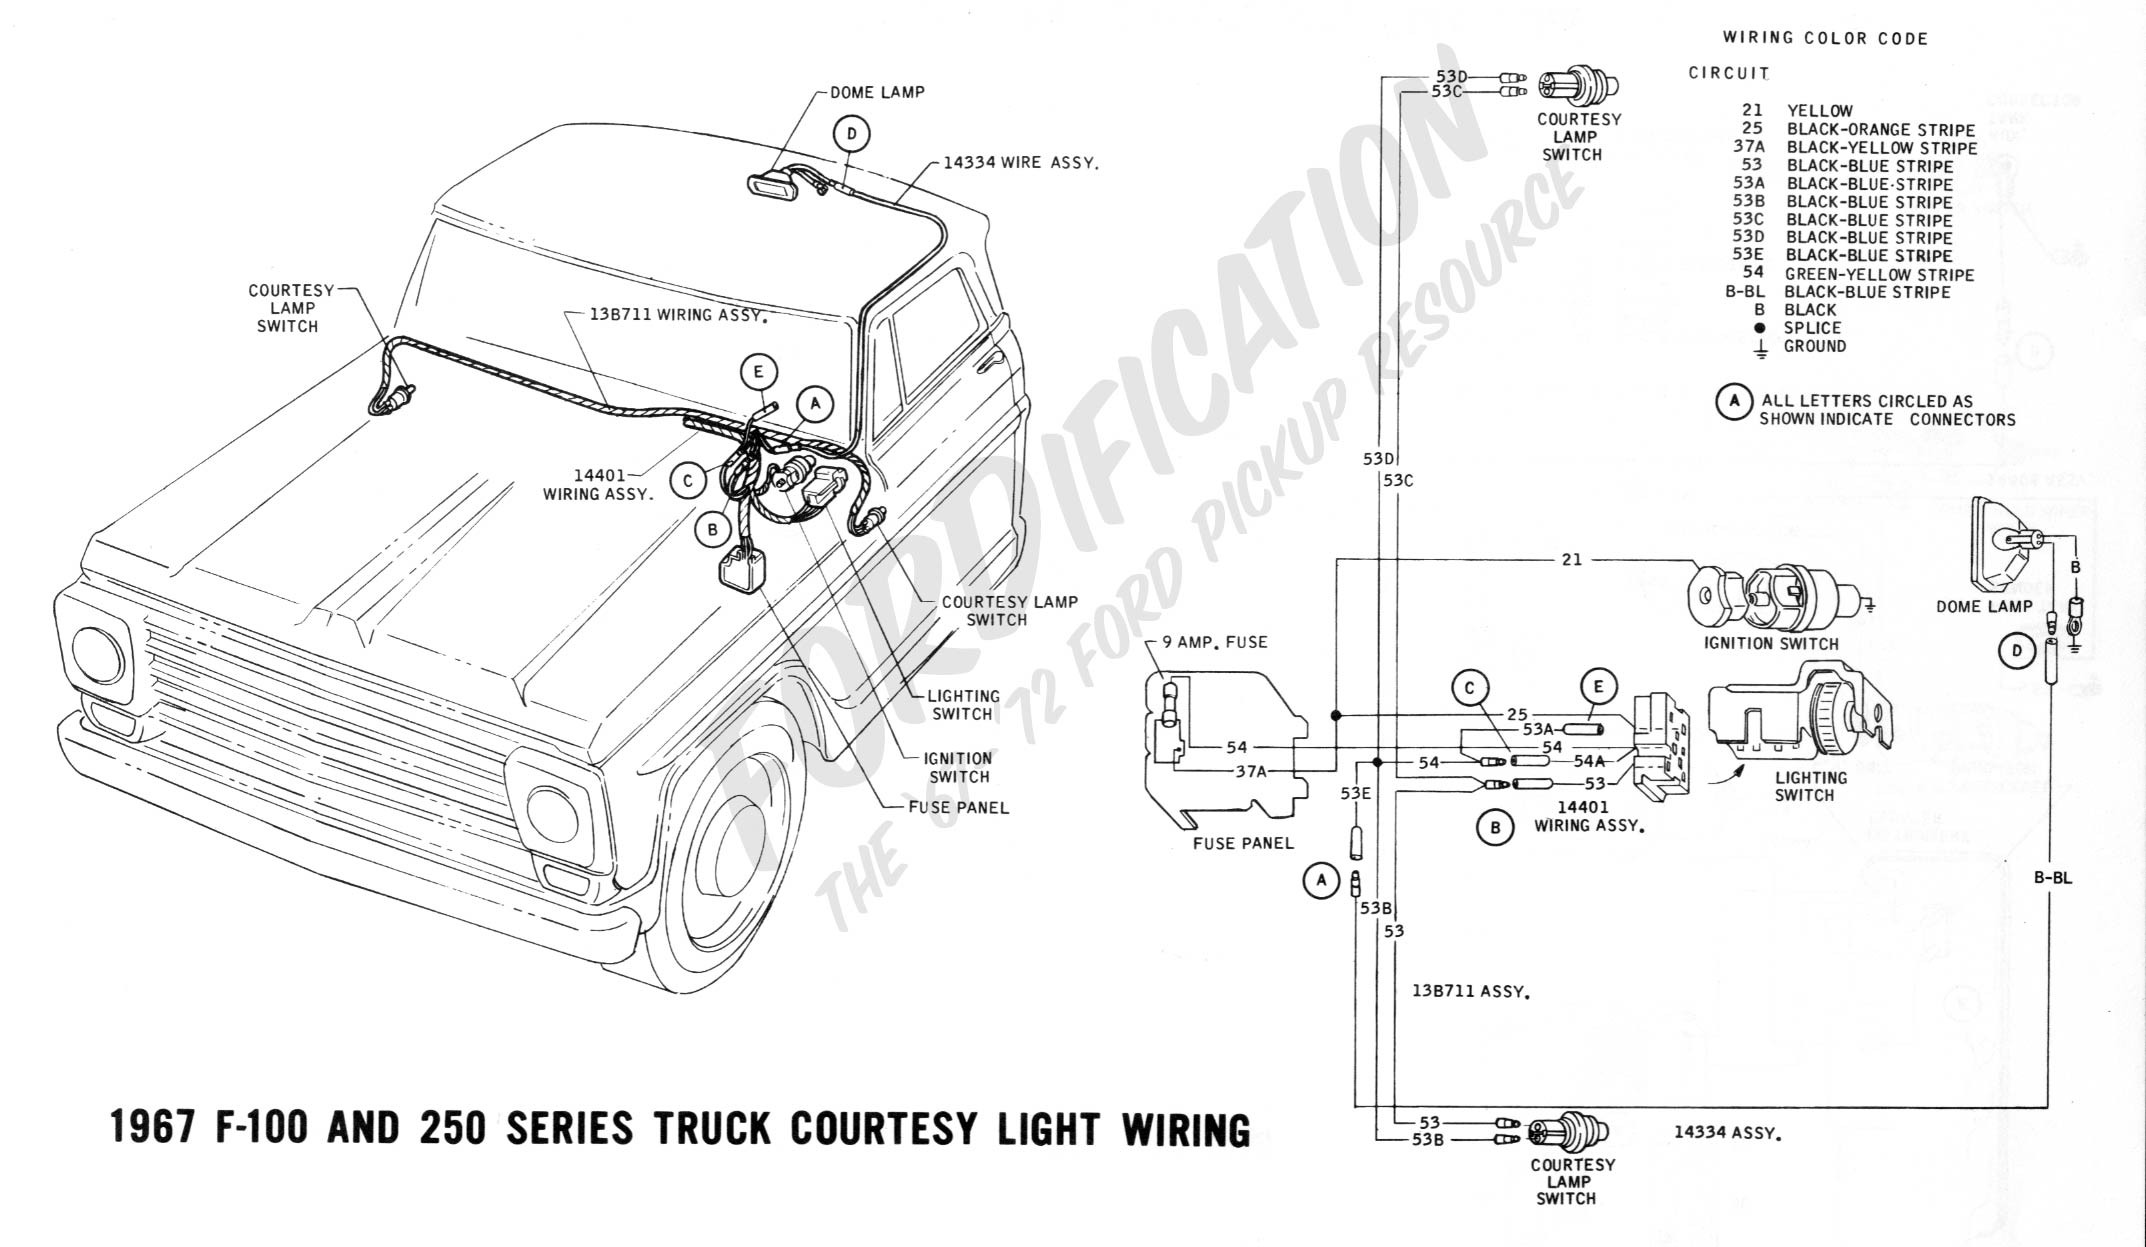 Ford F100 Wiring - 2009 Jeep Liberty Fuse Box for Wiring Diagram SchematicsWiring Diagram Schematics